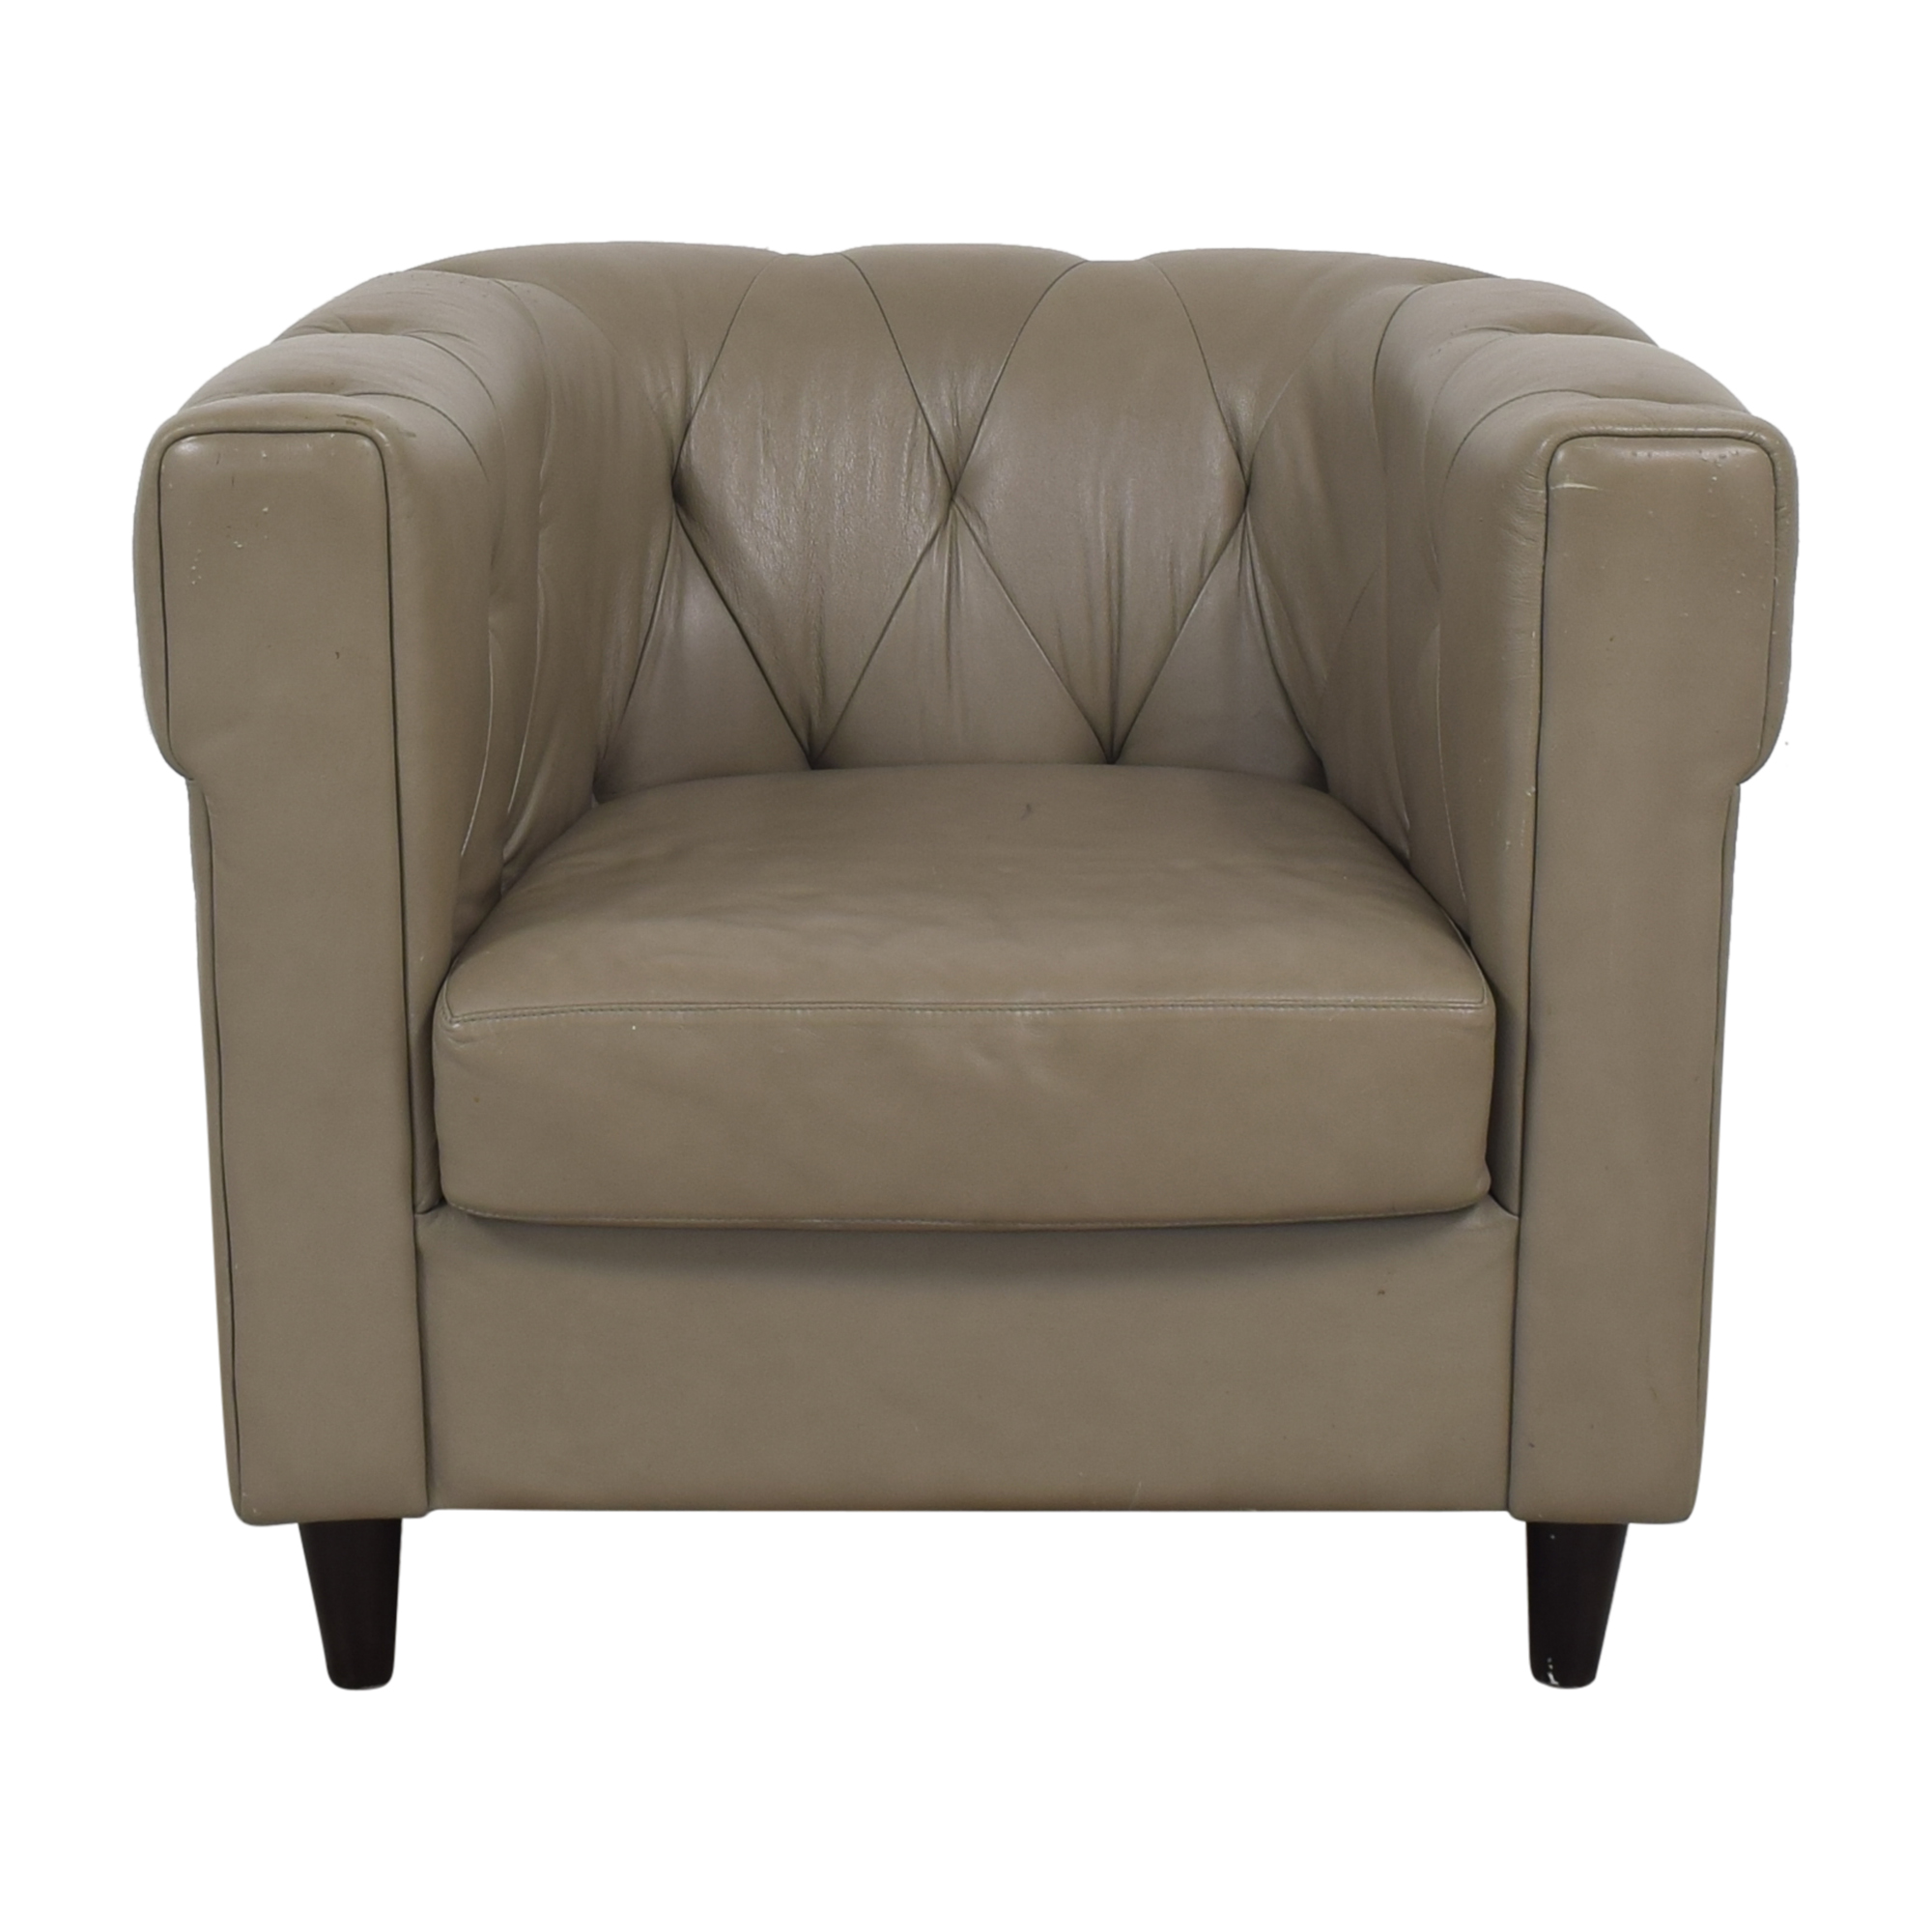 West Elm West Elm Club Chair ct